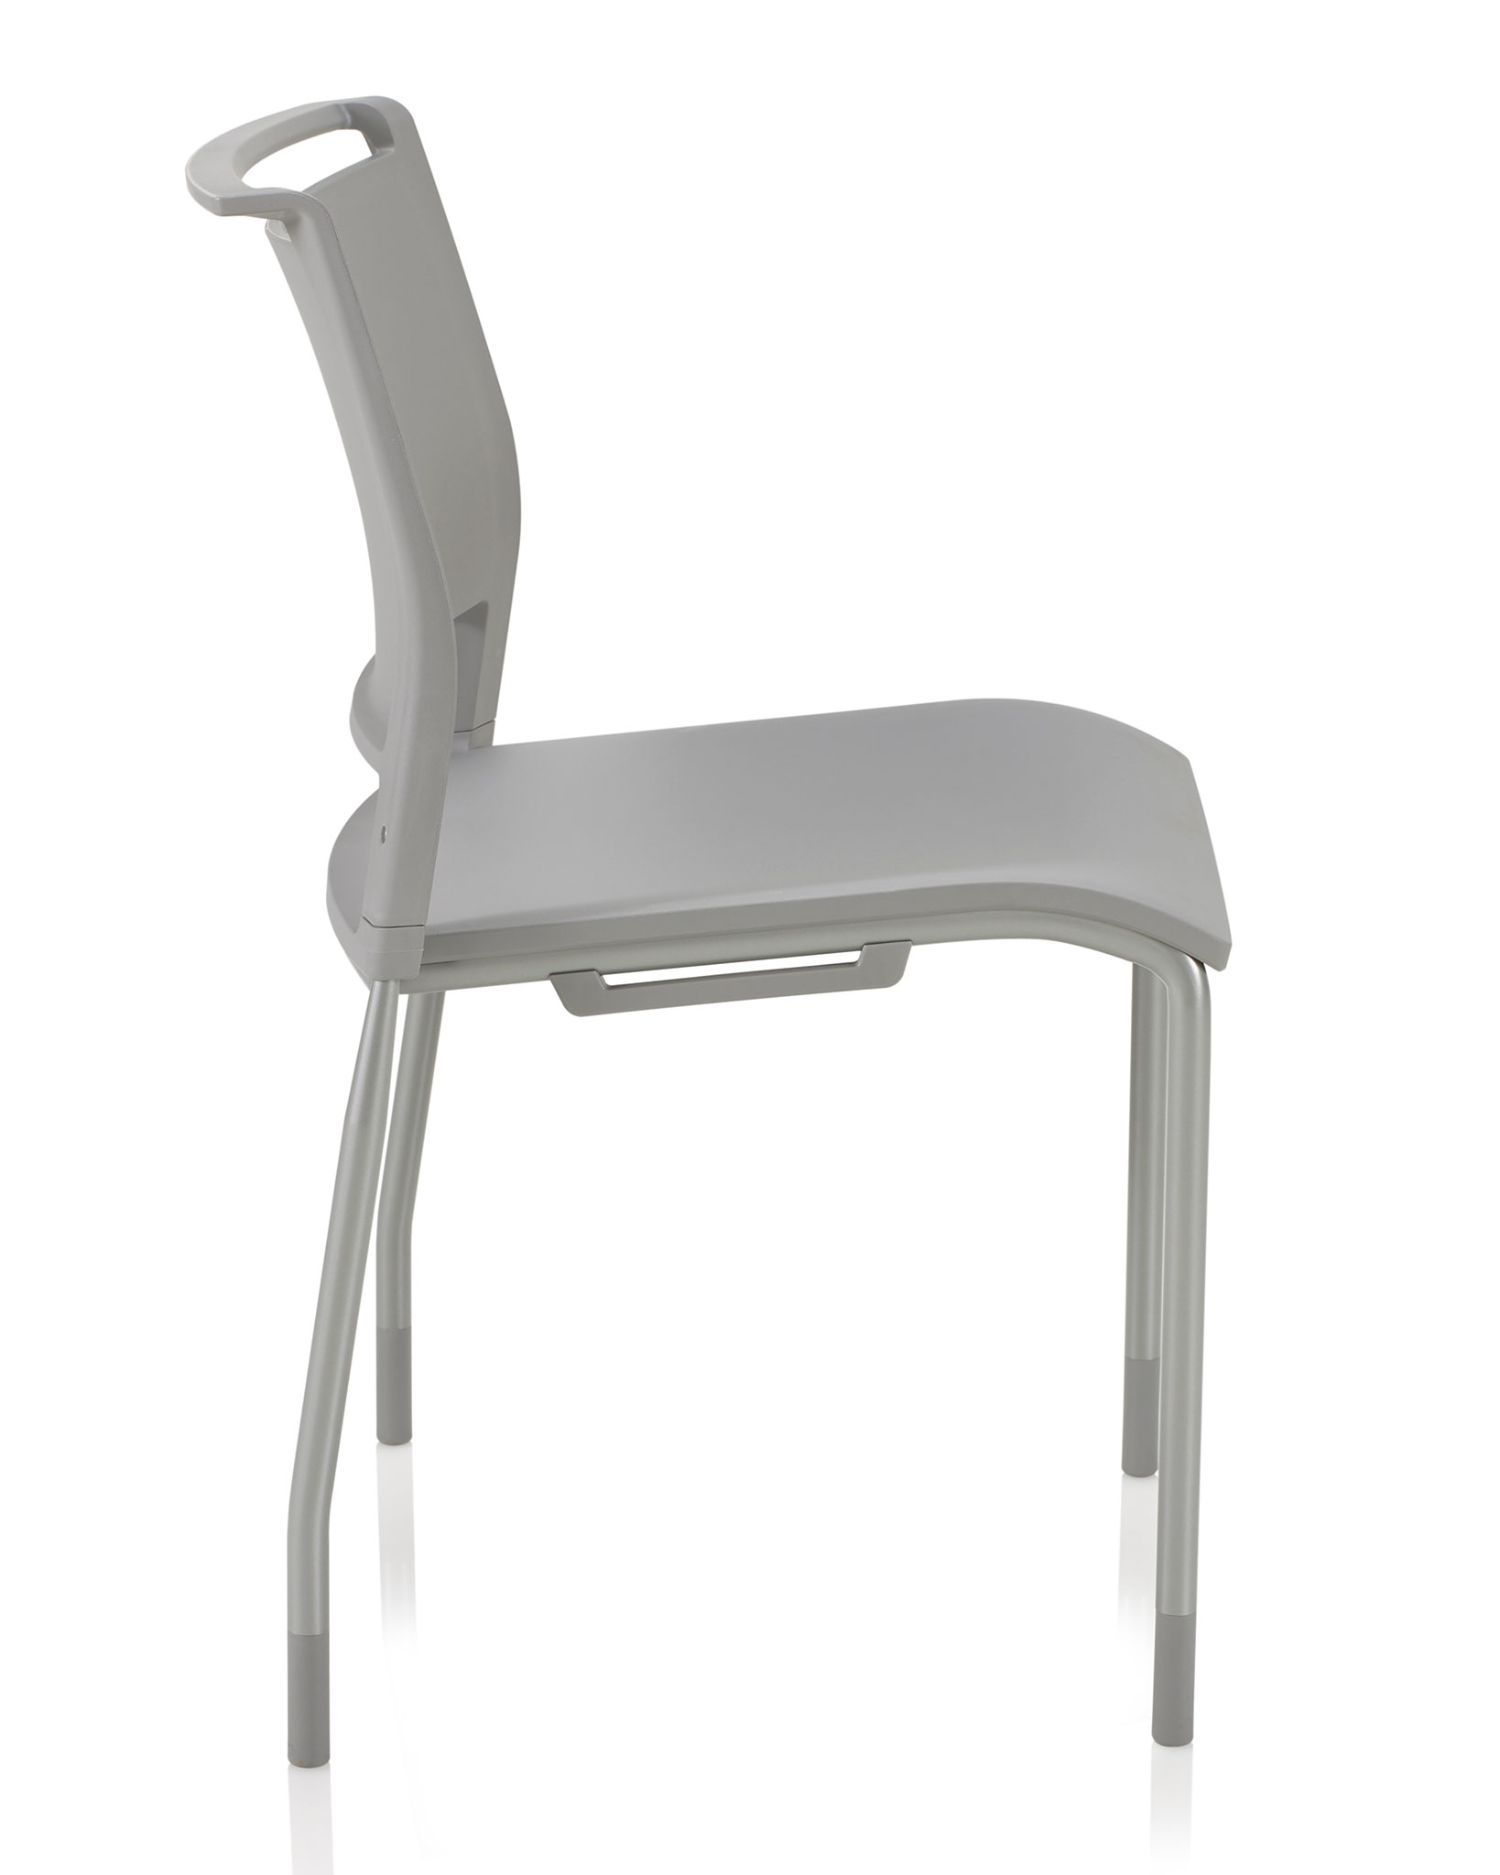 opt4 stacking chair side